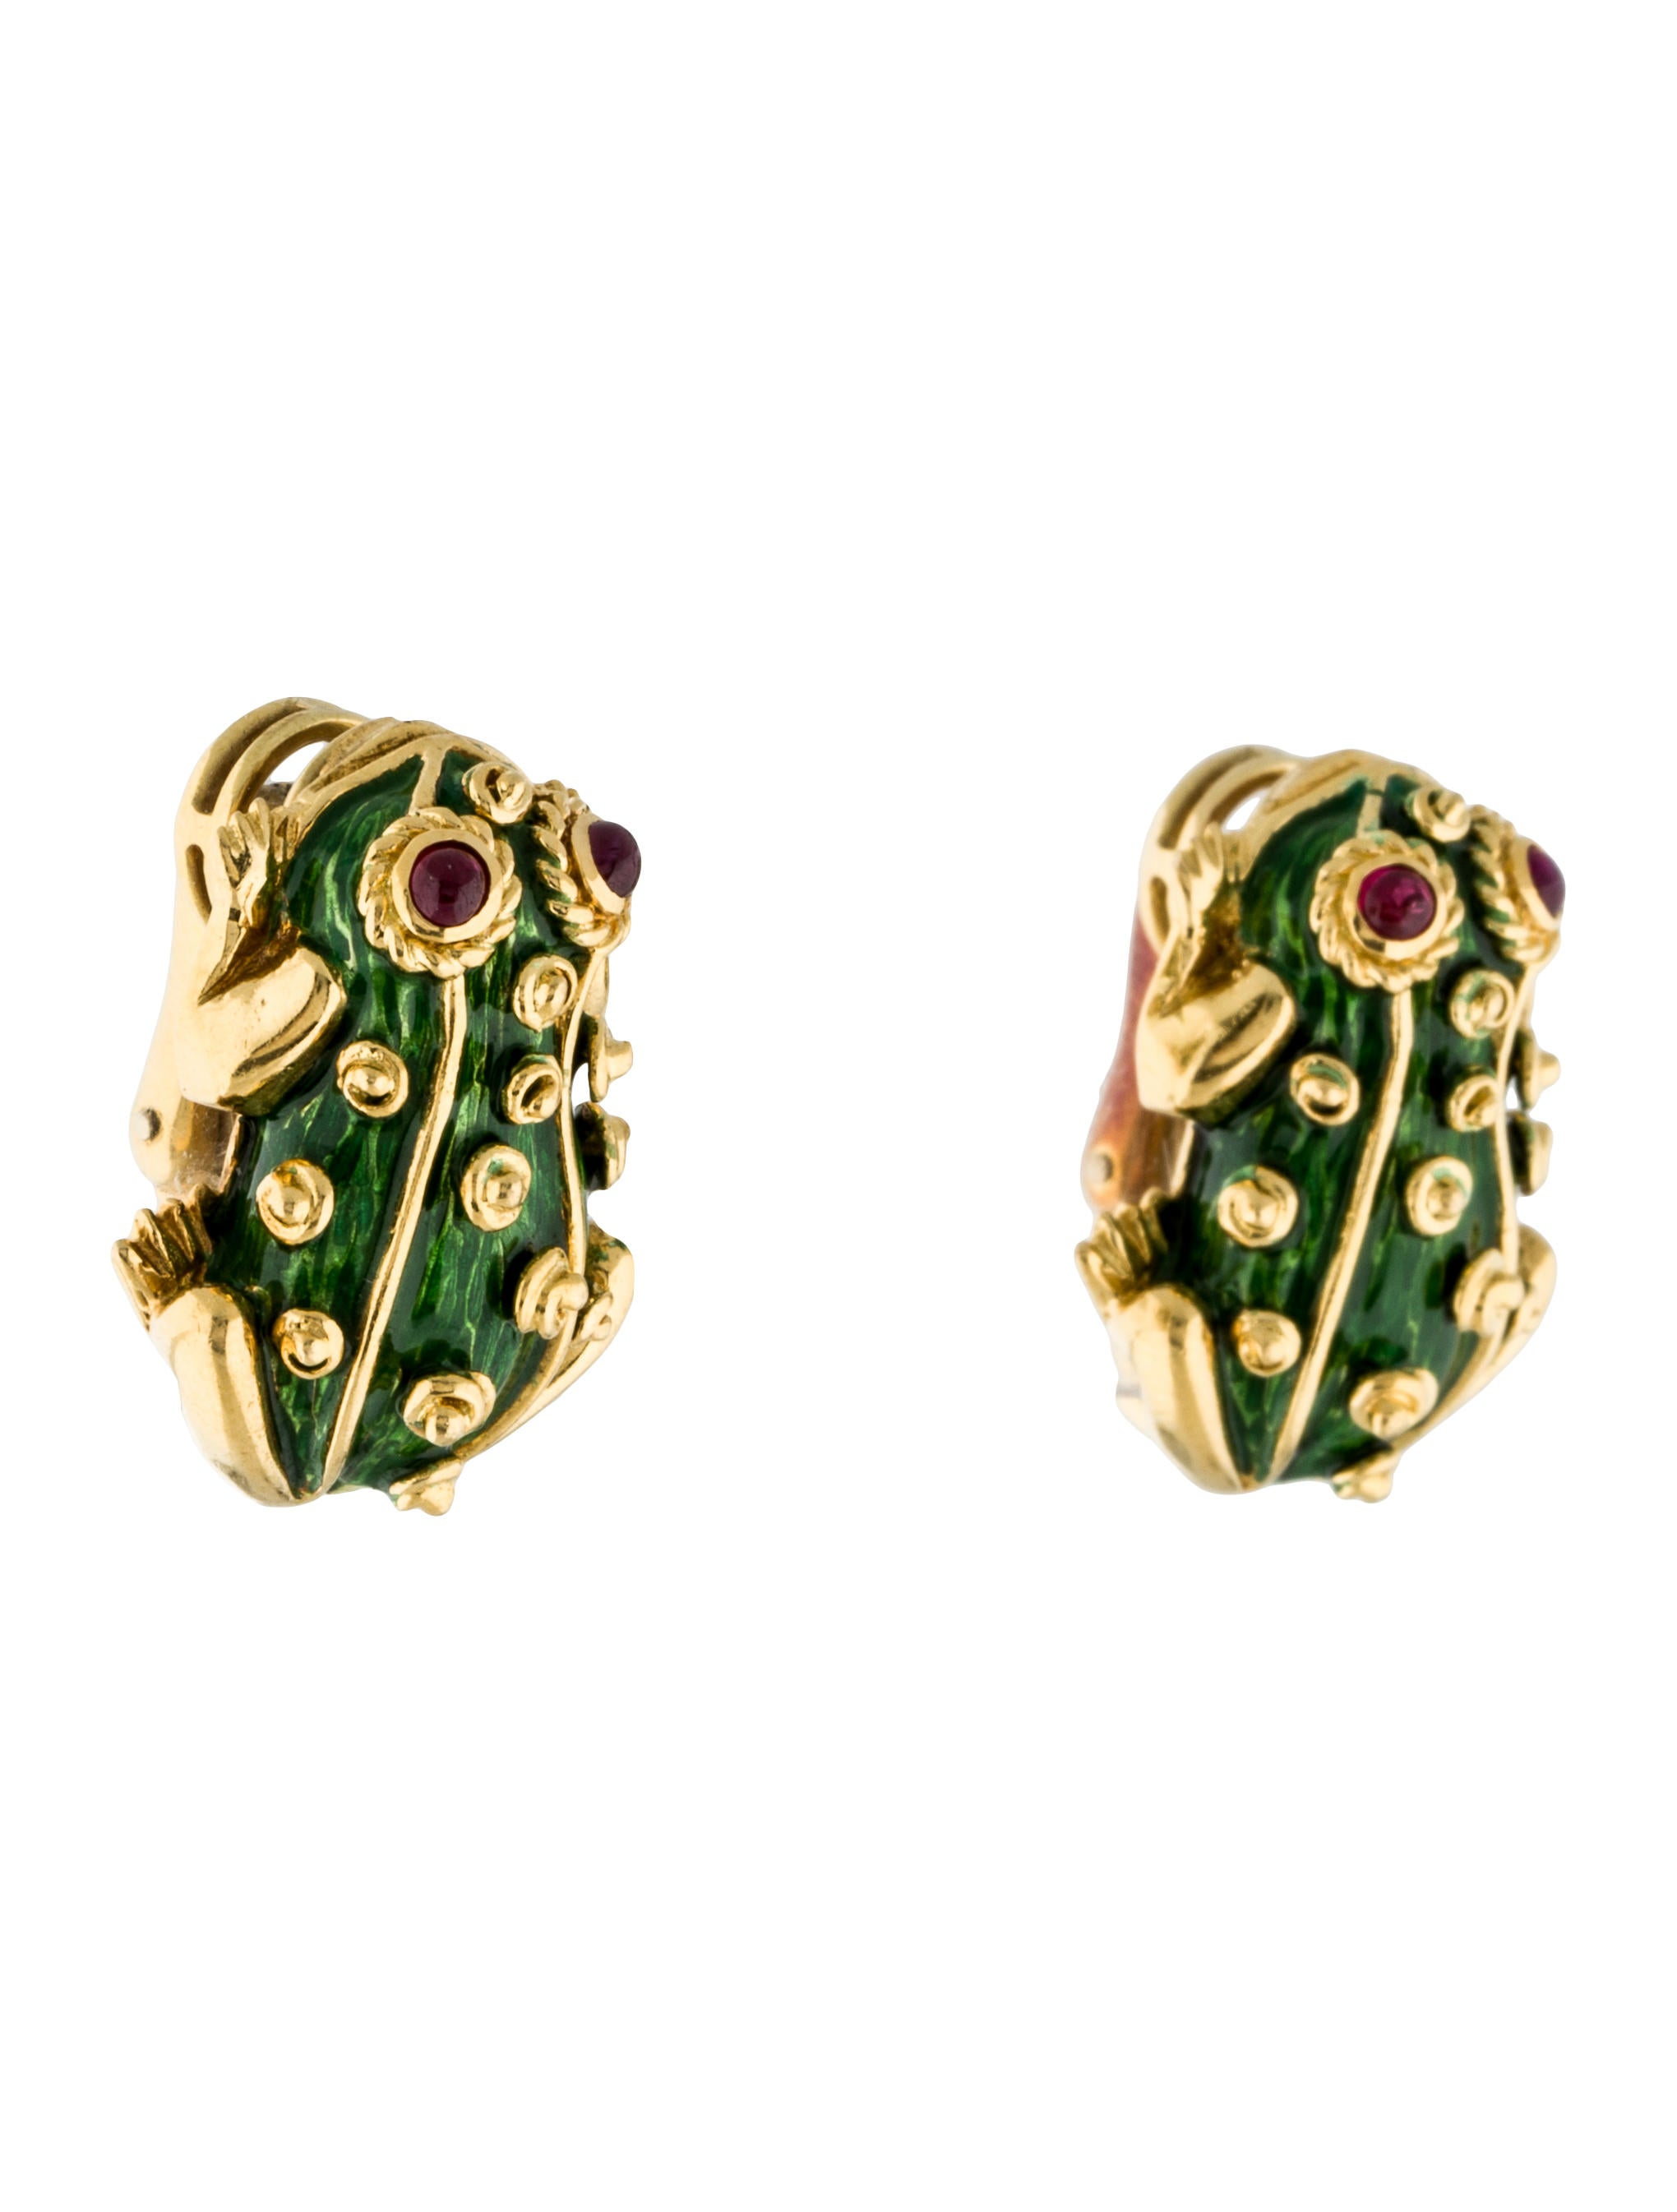 14k enamelled ruby frog earrings earrings earri31091